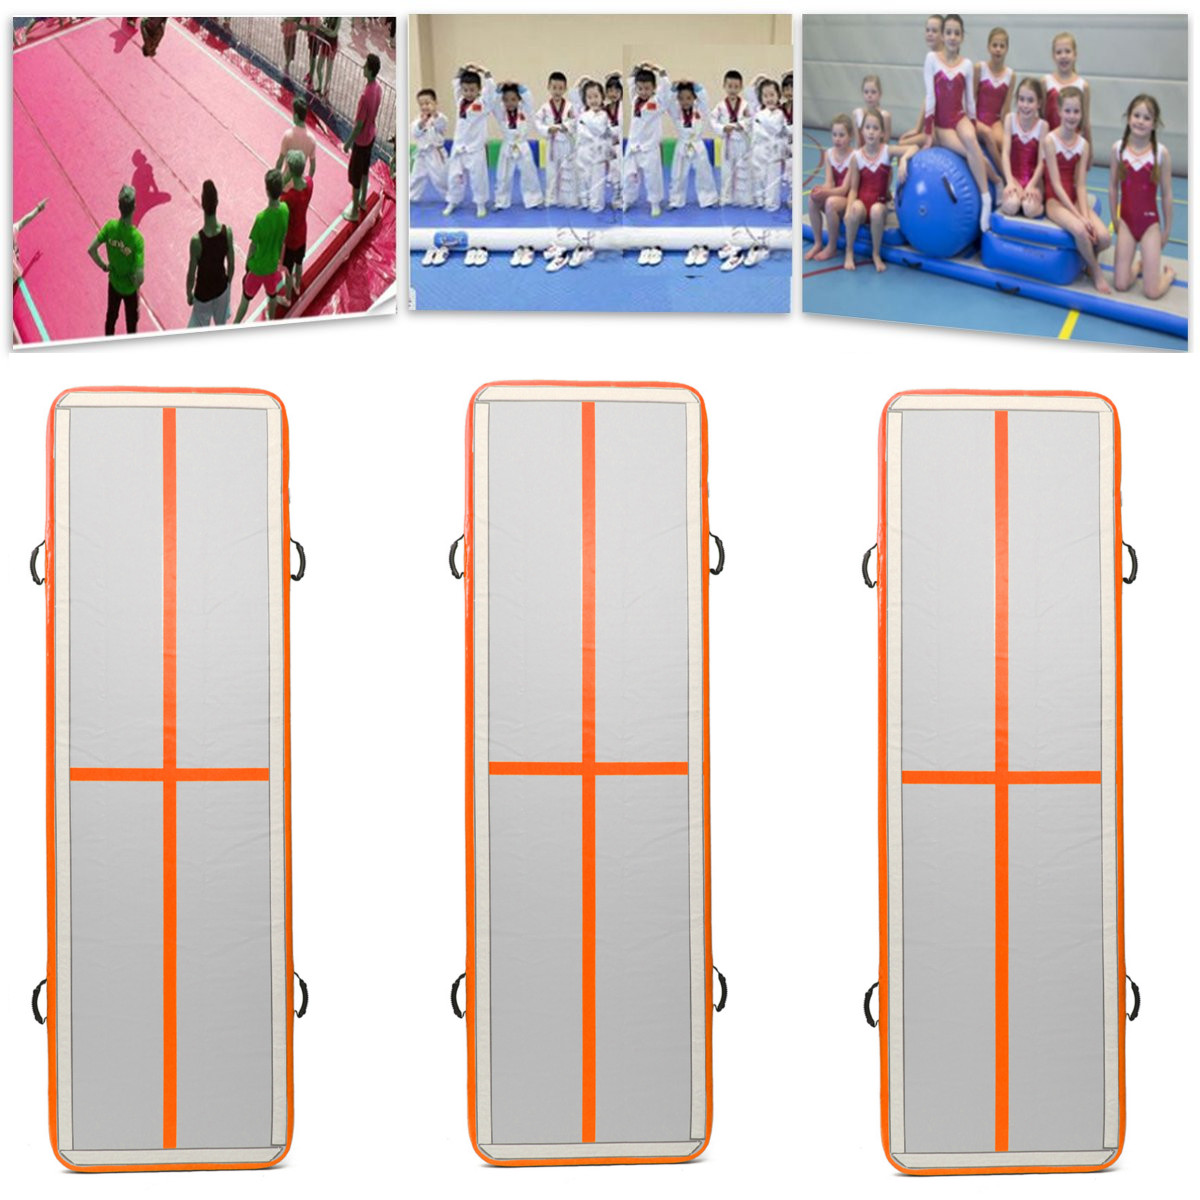 GoFun 100*300*10cm Airtrack Gymnastics Mat Inflatable GYM Air Track Mat For Tumbling Training Equipment цена